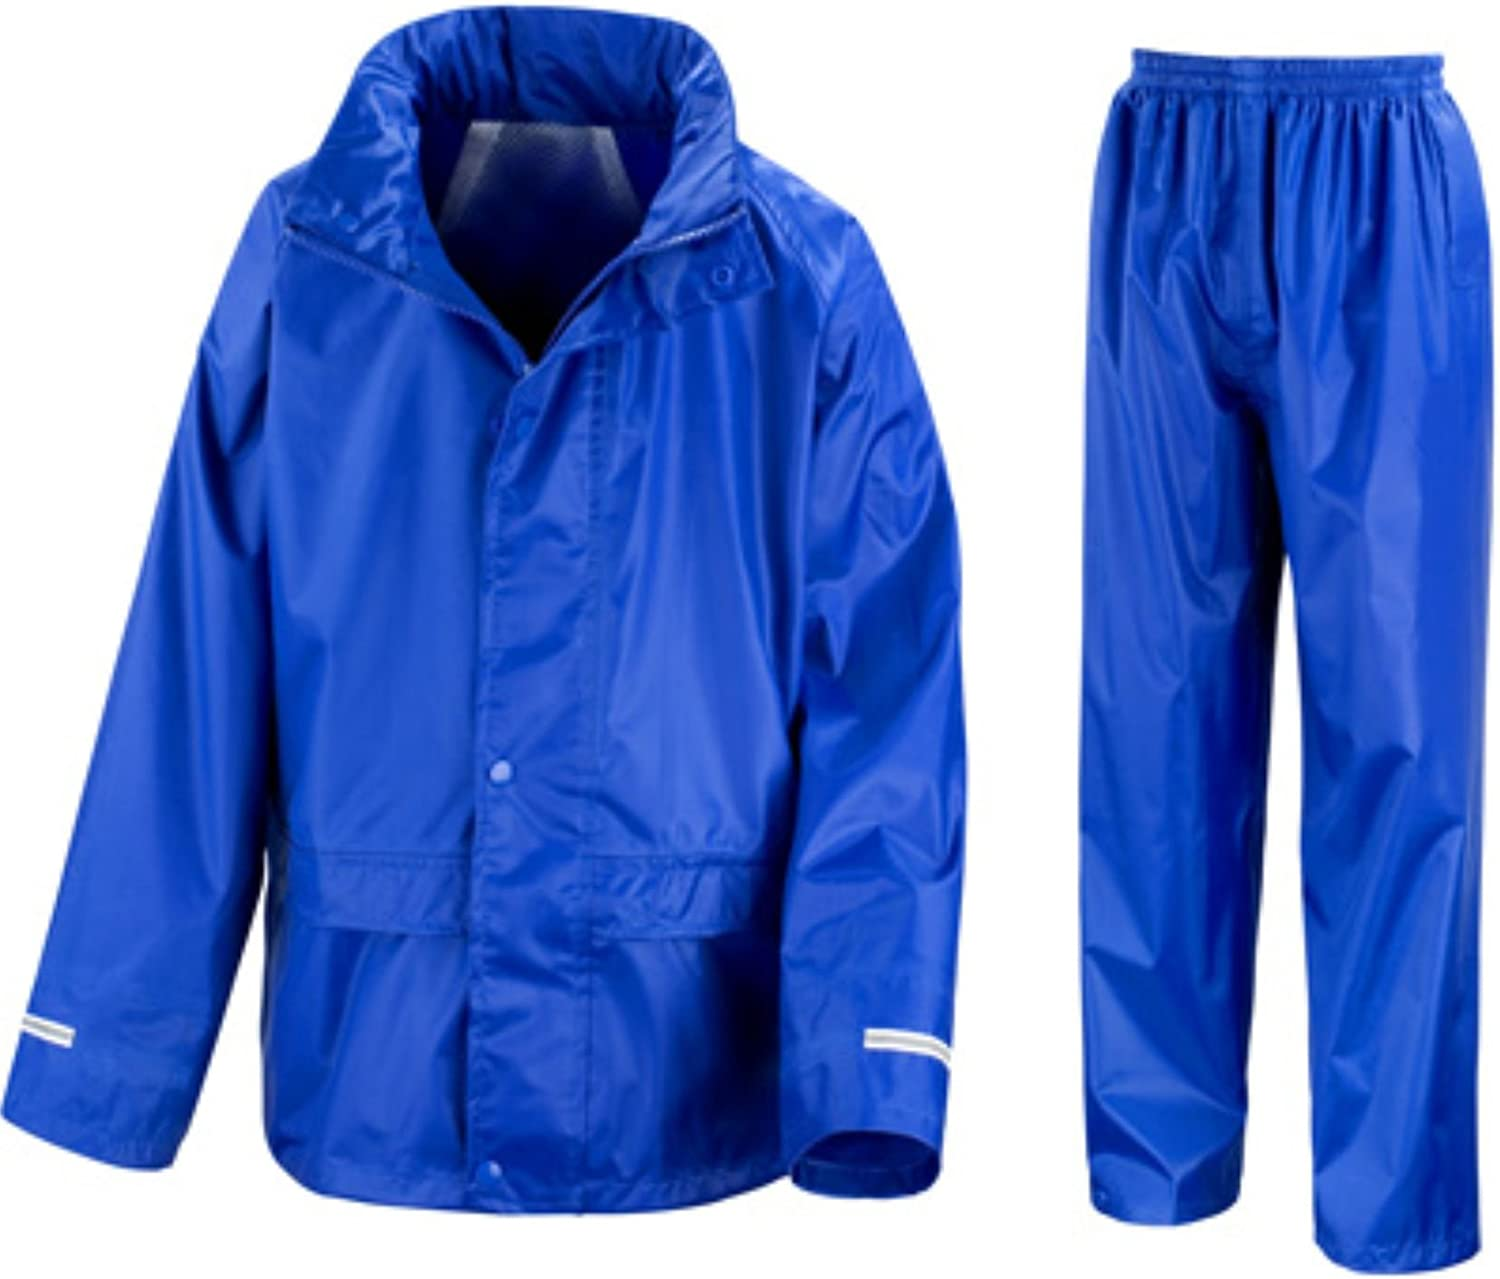 wetplay PlaySet Childrens Waterproof Jacket /& Trousers Suit Childs Kids Boys Girls